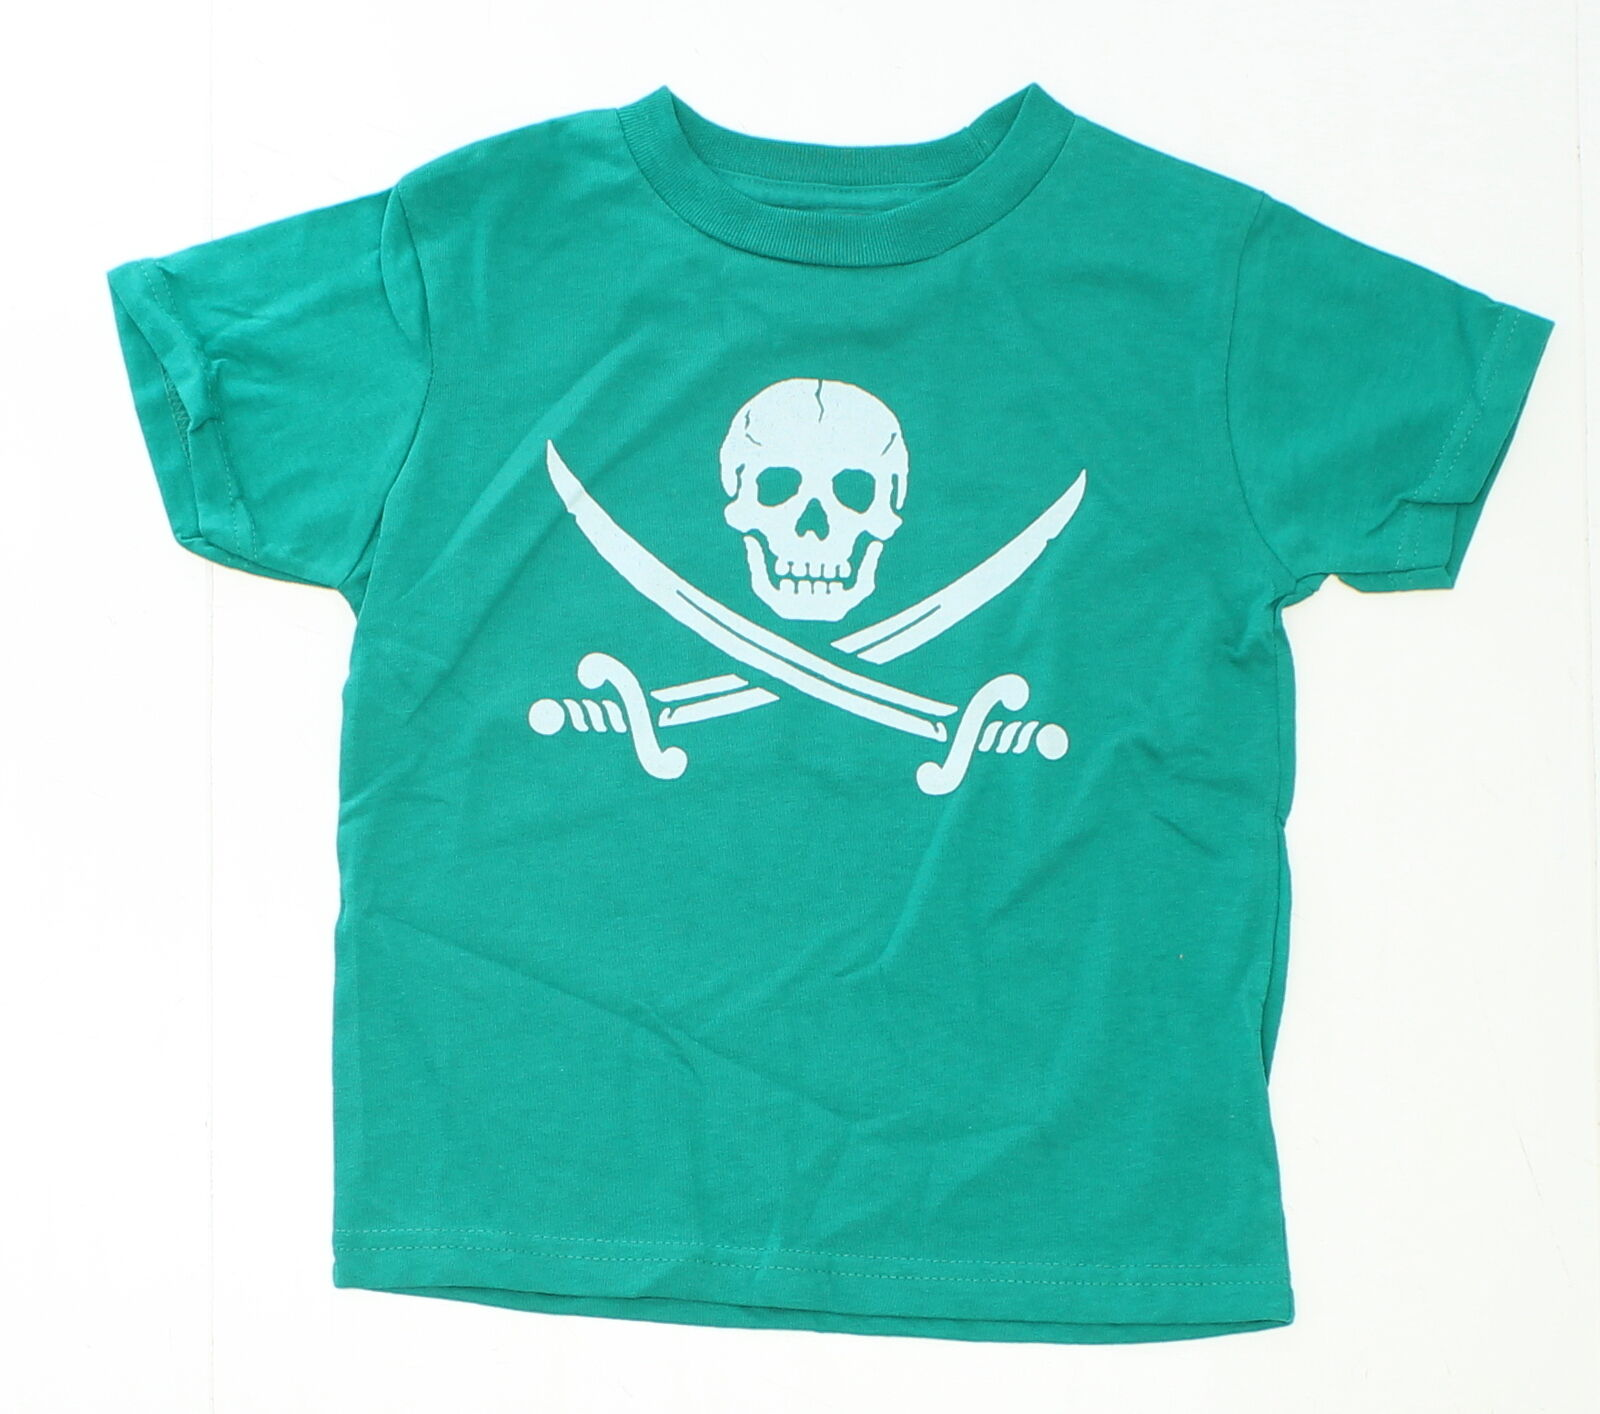 new toddler pirate graphic t shirt green